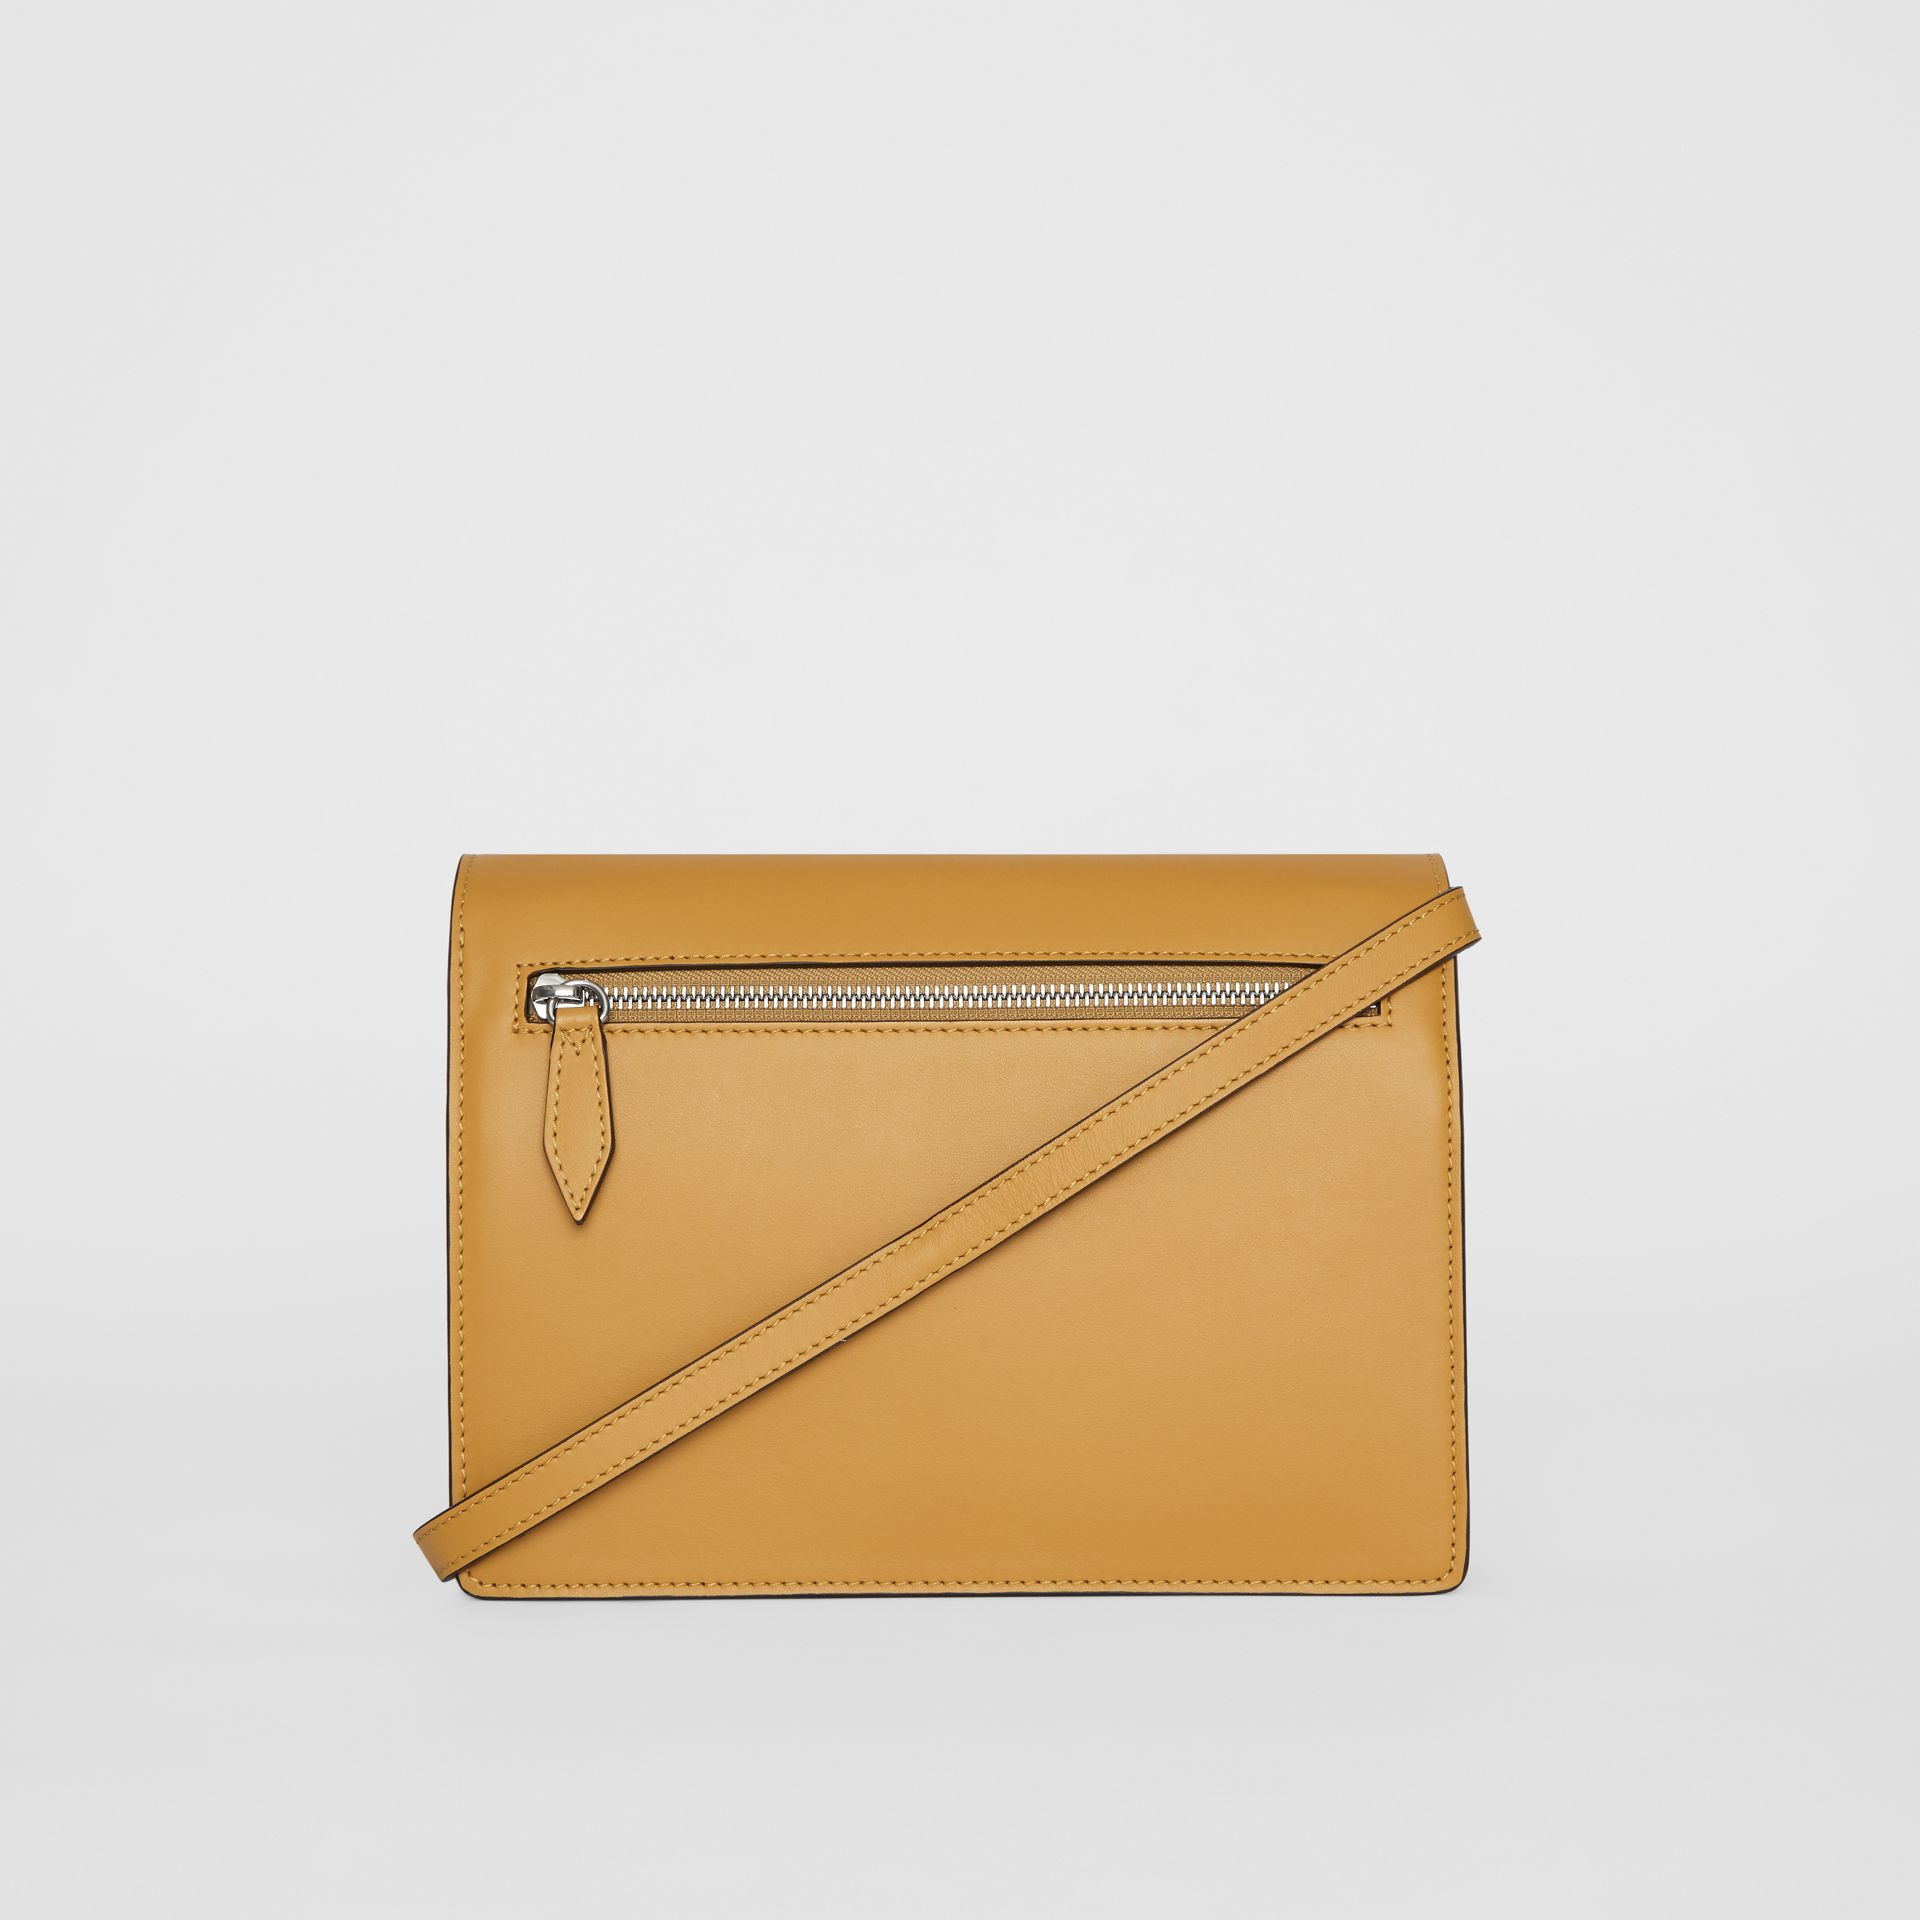 Two-tone Leather Crossbody Bag in Limestone/cornflower Yellow - Women | Burberry Singapore - gallery image 7